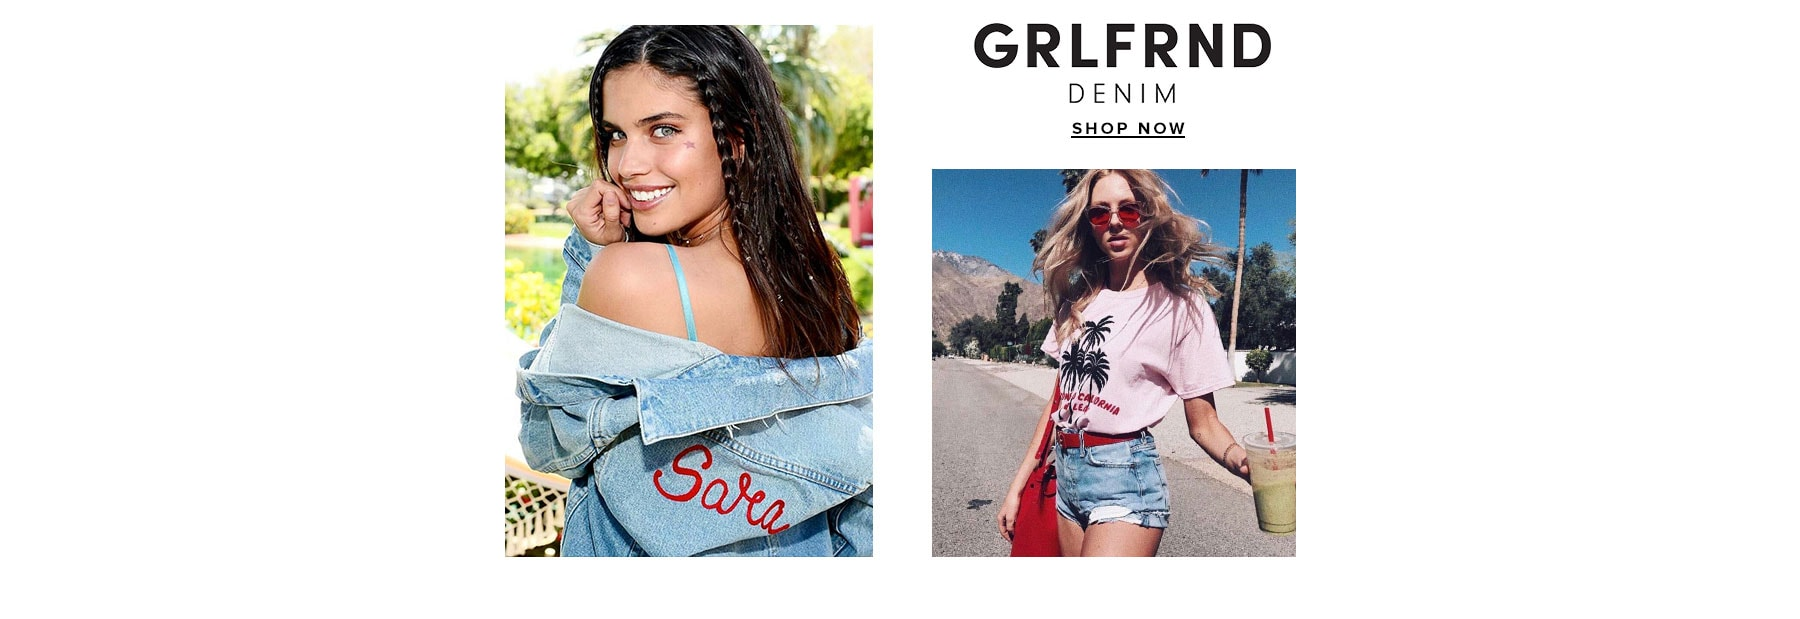 GRLFRND Denim